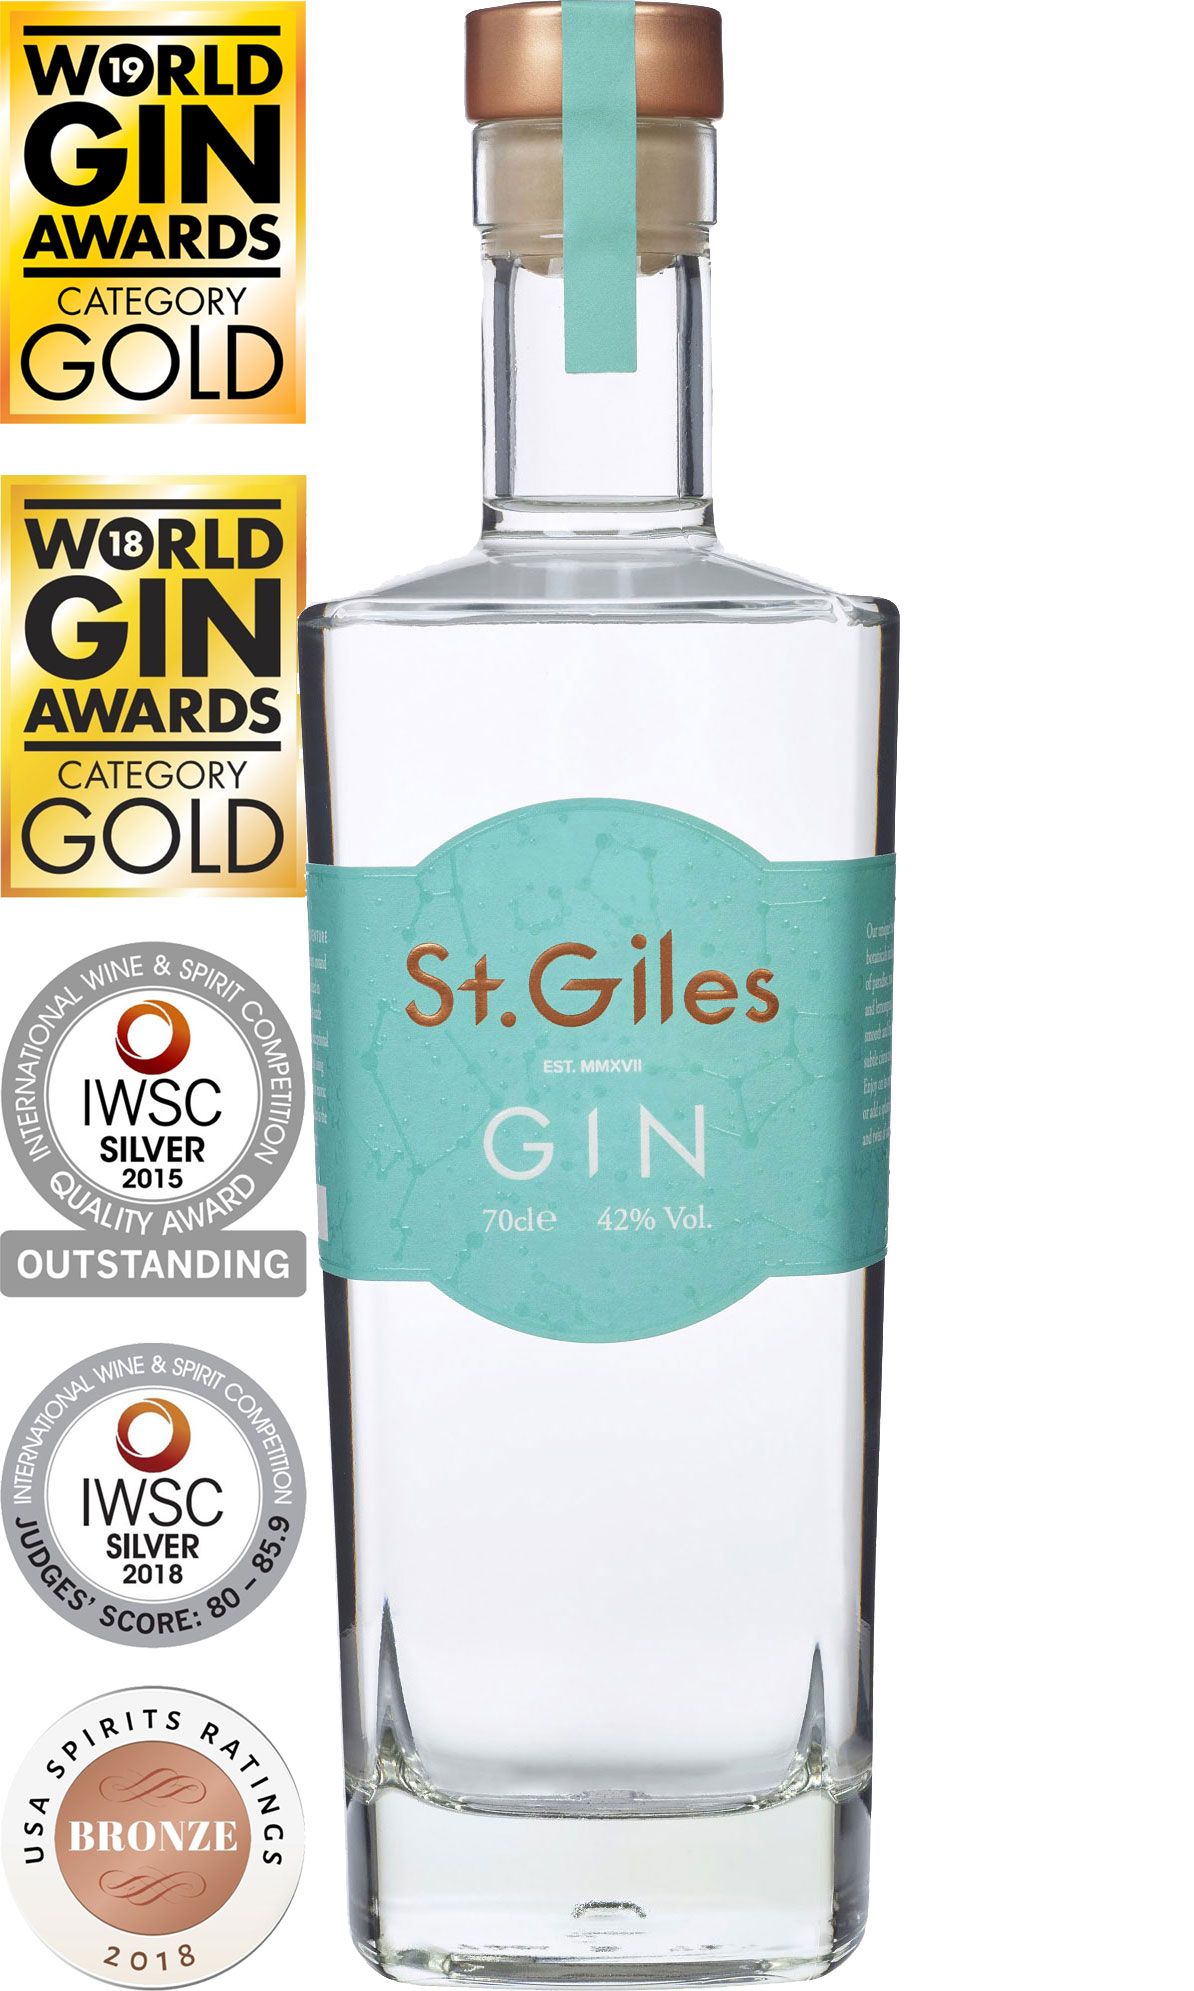 St. Giles - Signature Gin 70cl Bottle